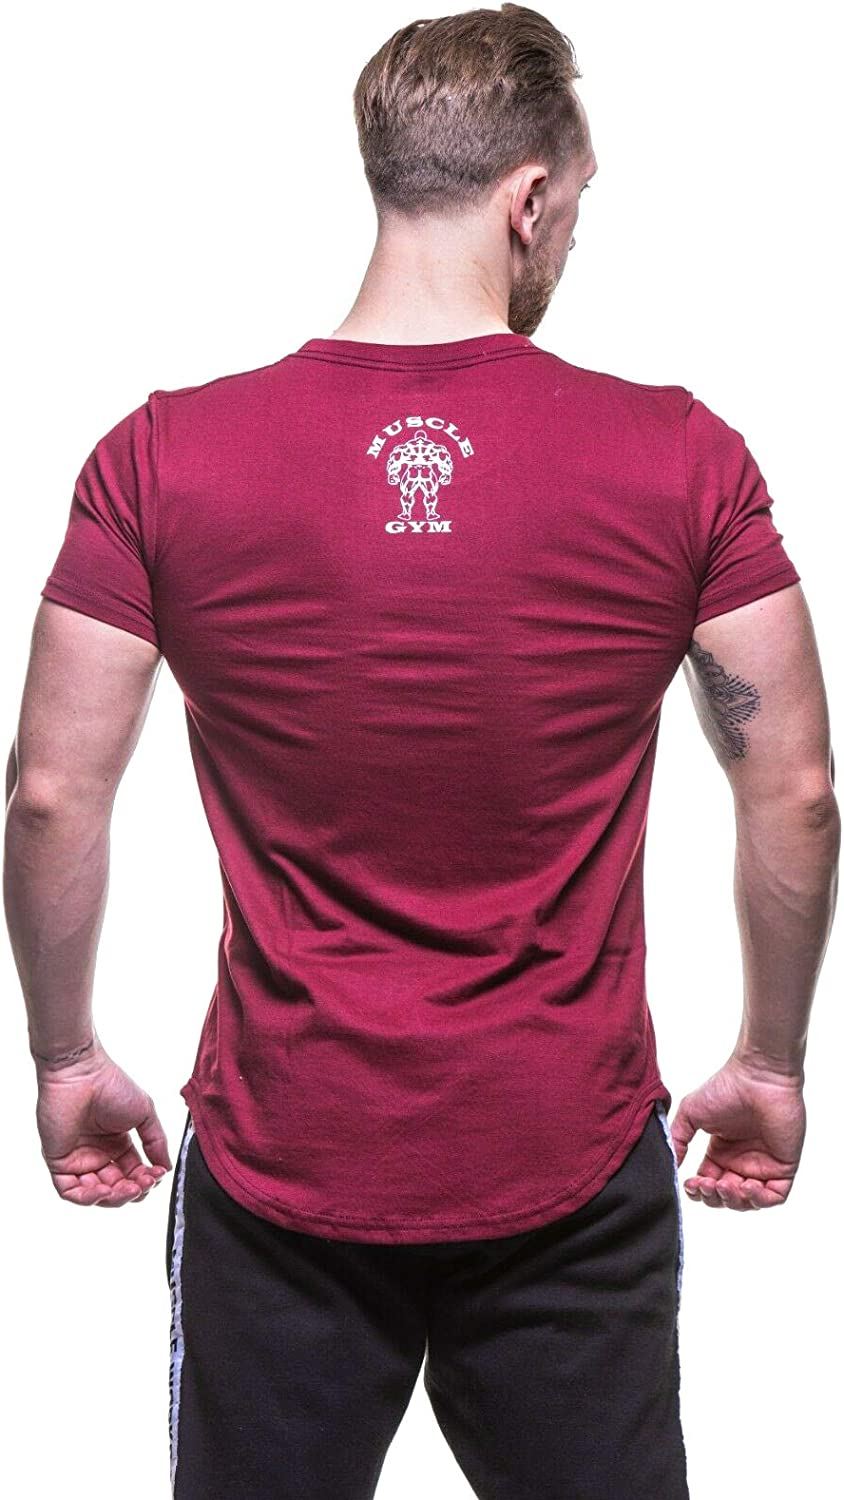 Stringers Bodybuilding T-Shirts Muscle Fit MUSCLE GYM Mens T-Shirt Top